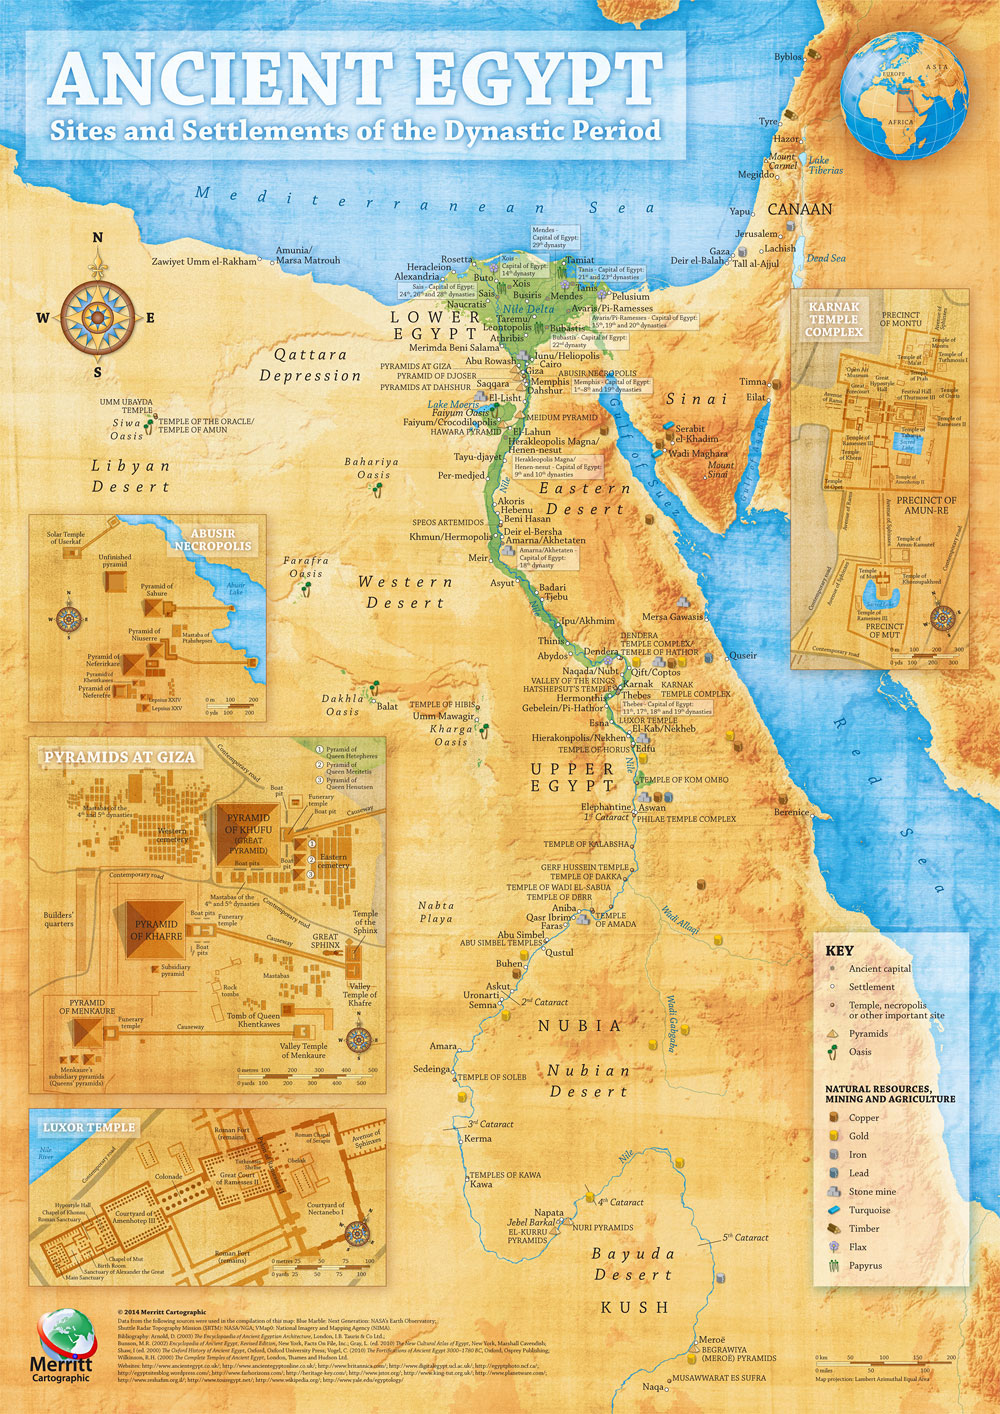 Map of Ancient Egypt